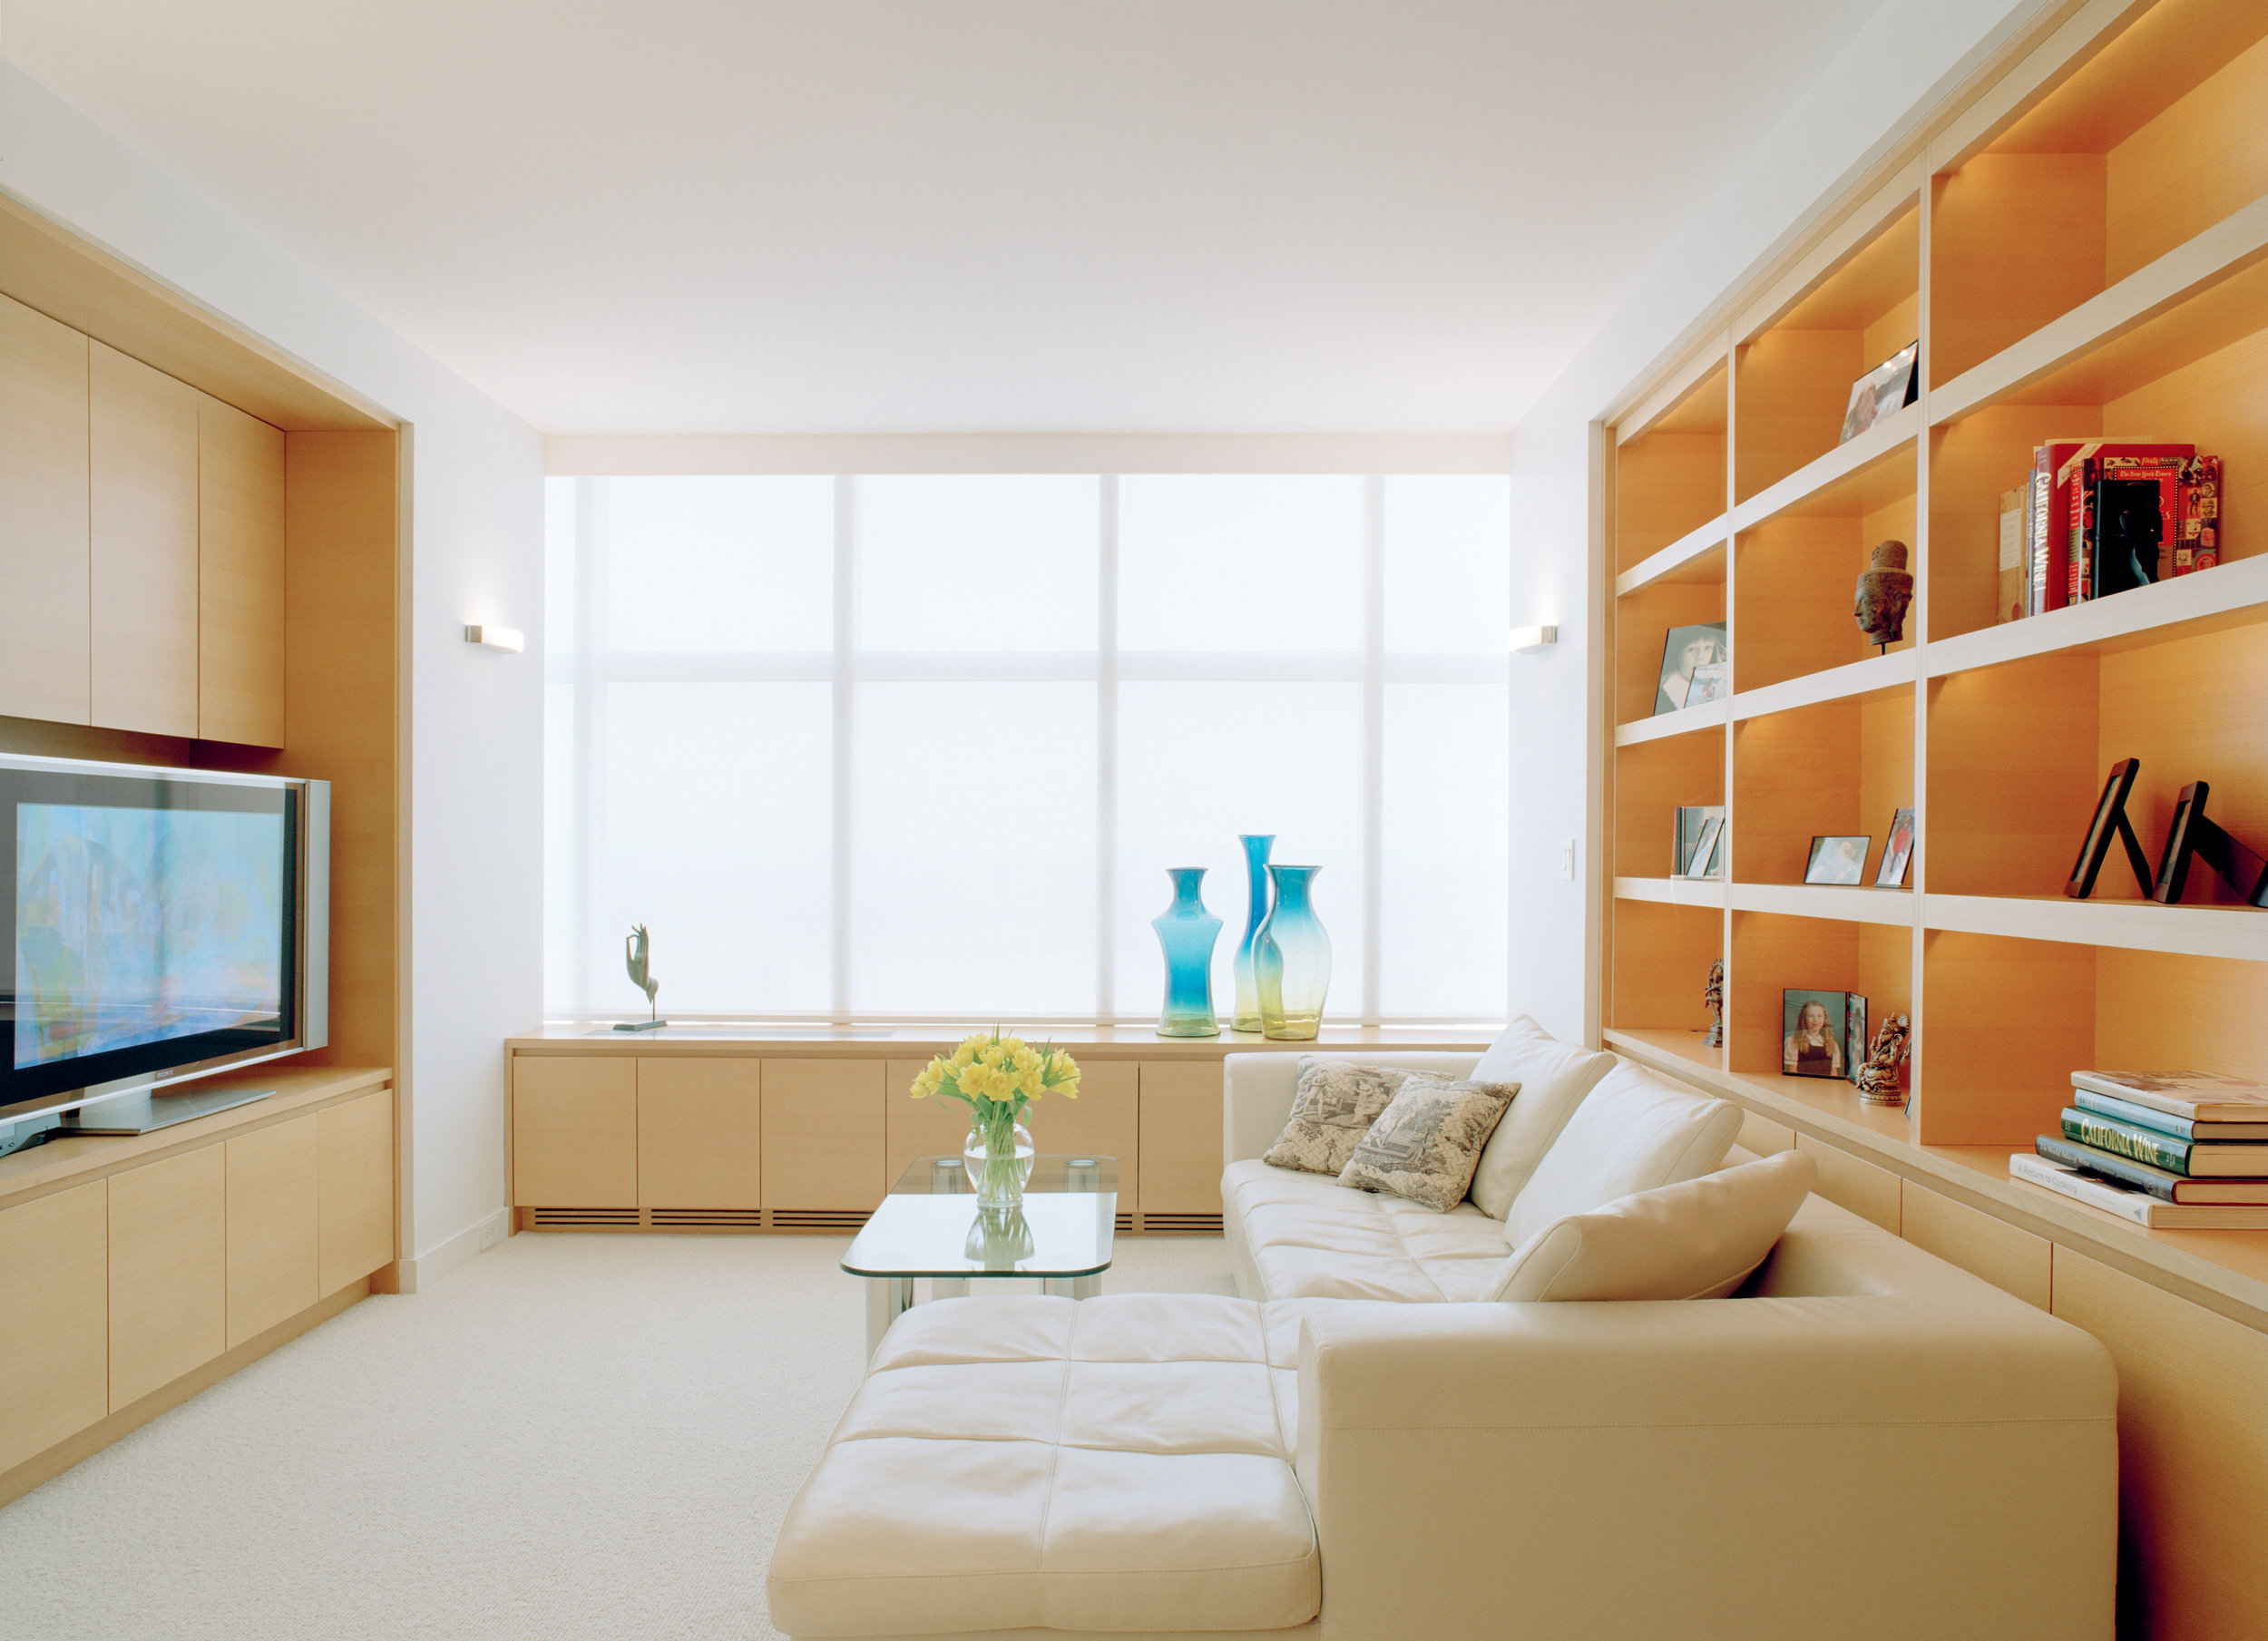 Apartment at Lincoln Center